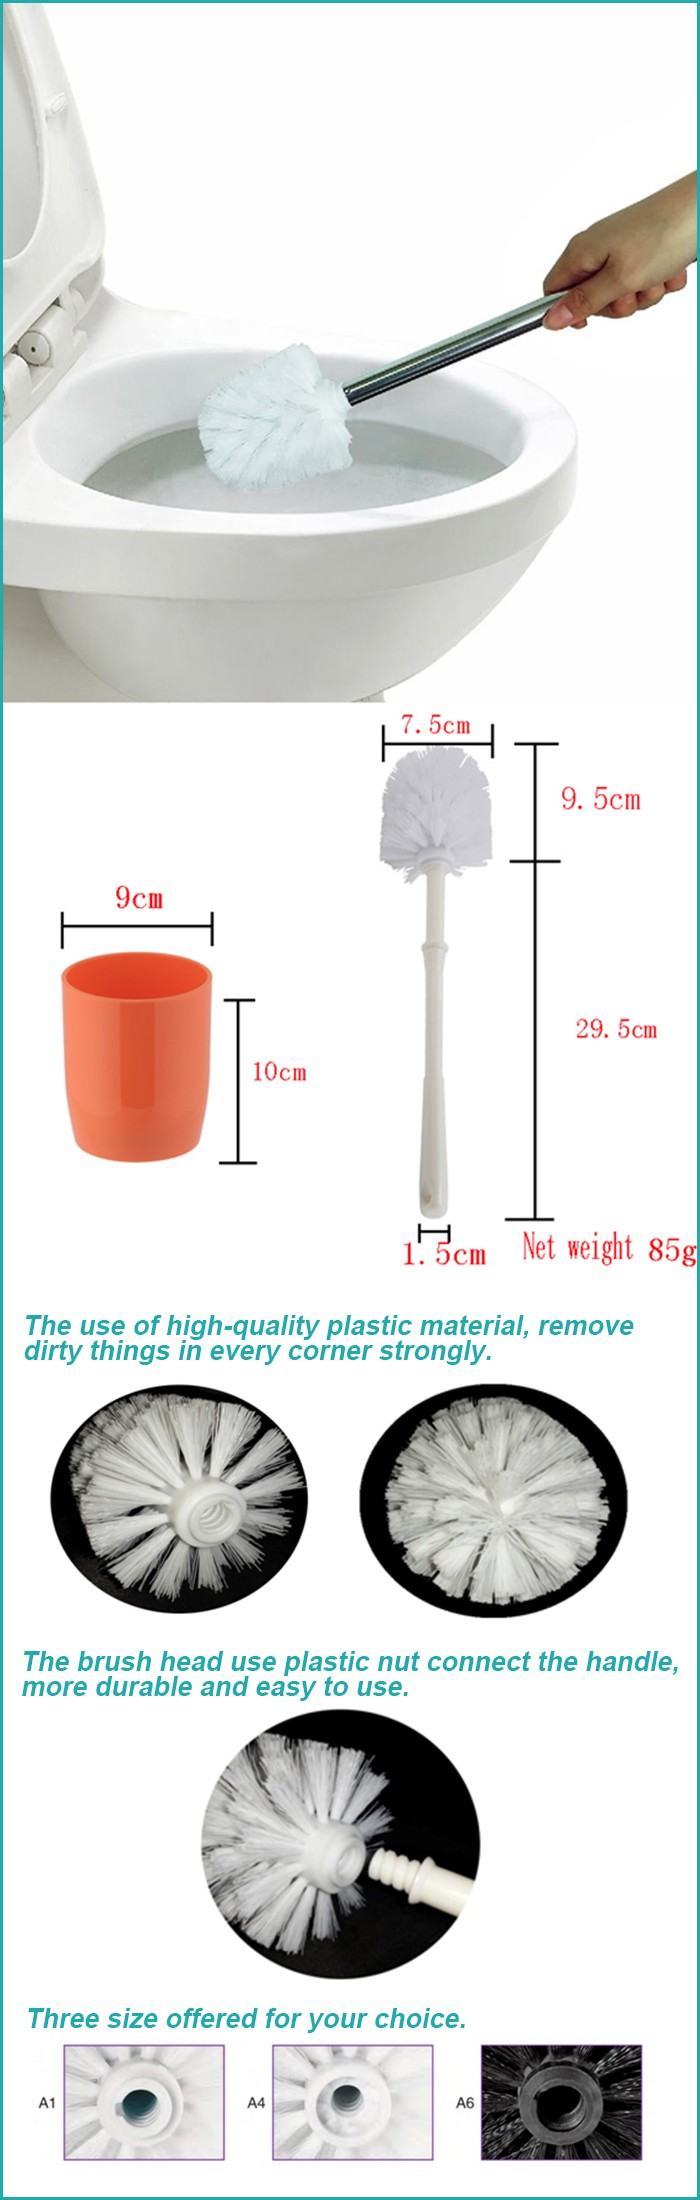 low moq high quality workable plastic toilet brush holder set